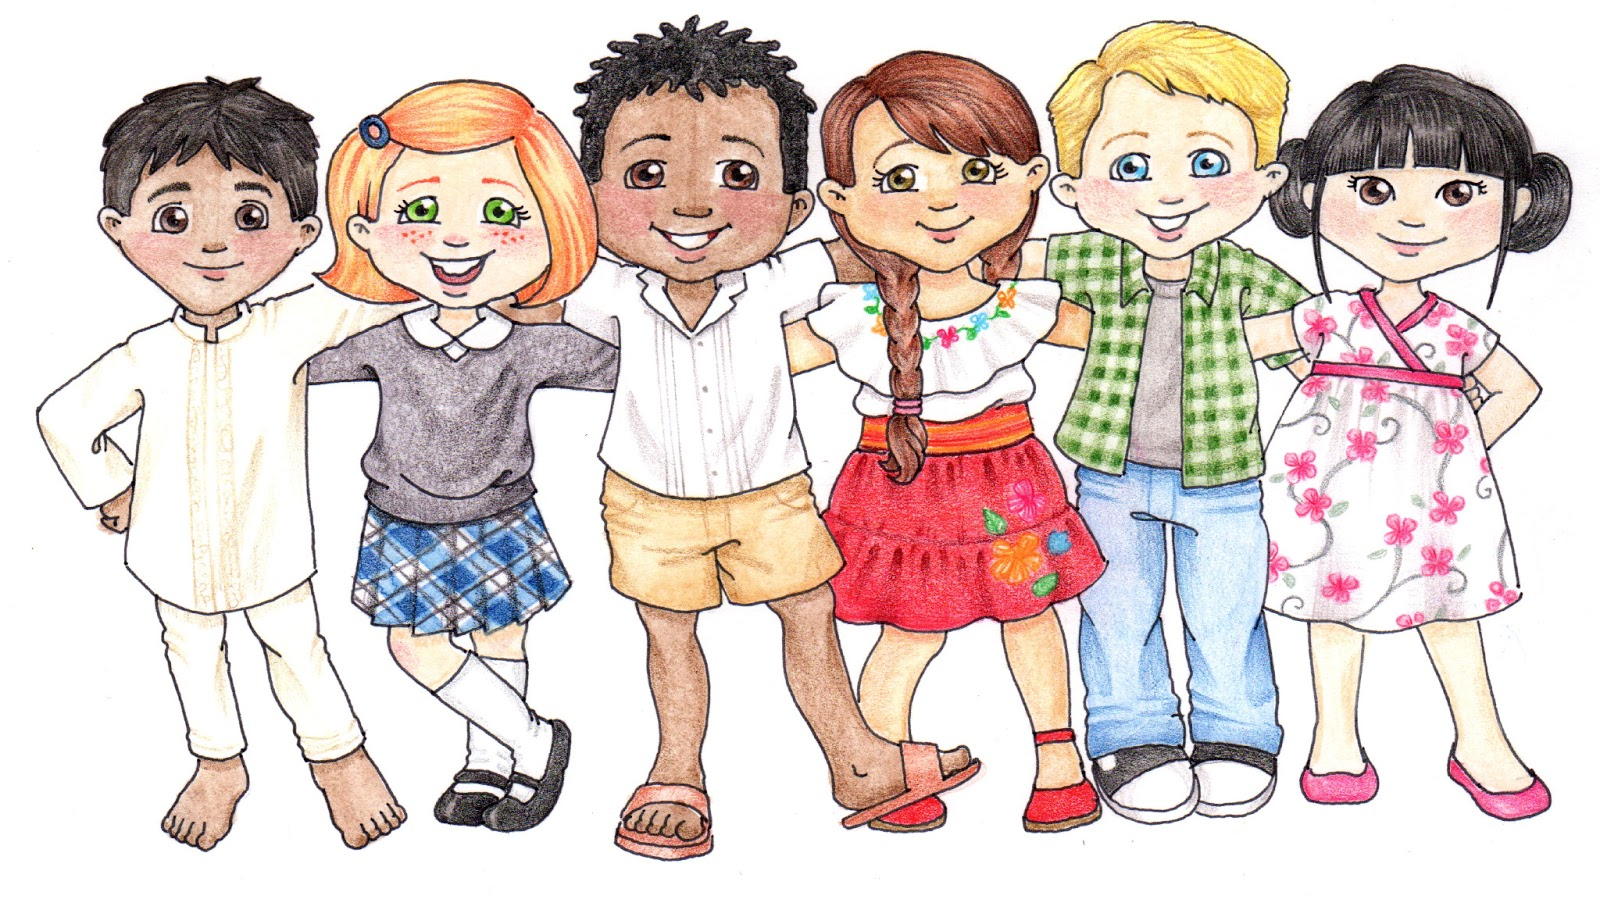 Kids cliparts jpg freeuse Loving kids clipart - ClipartFest jpg freeuse